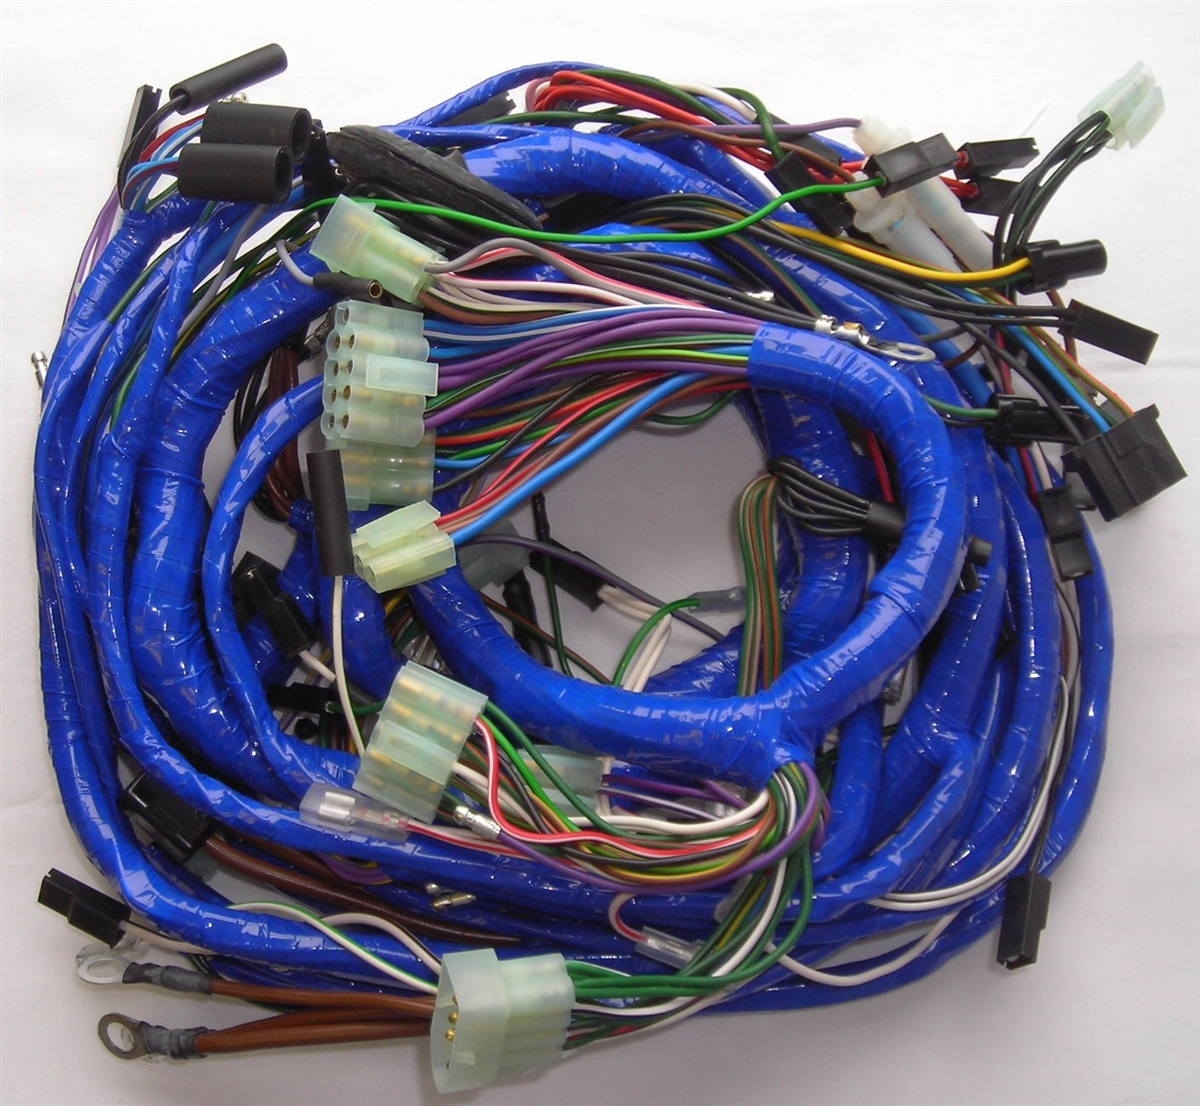 hight resolution of 1978 mgb wiring harness wiring diagram mega1978 mgb wiring harness